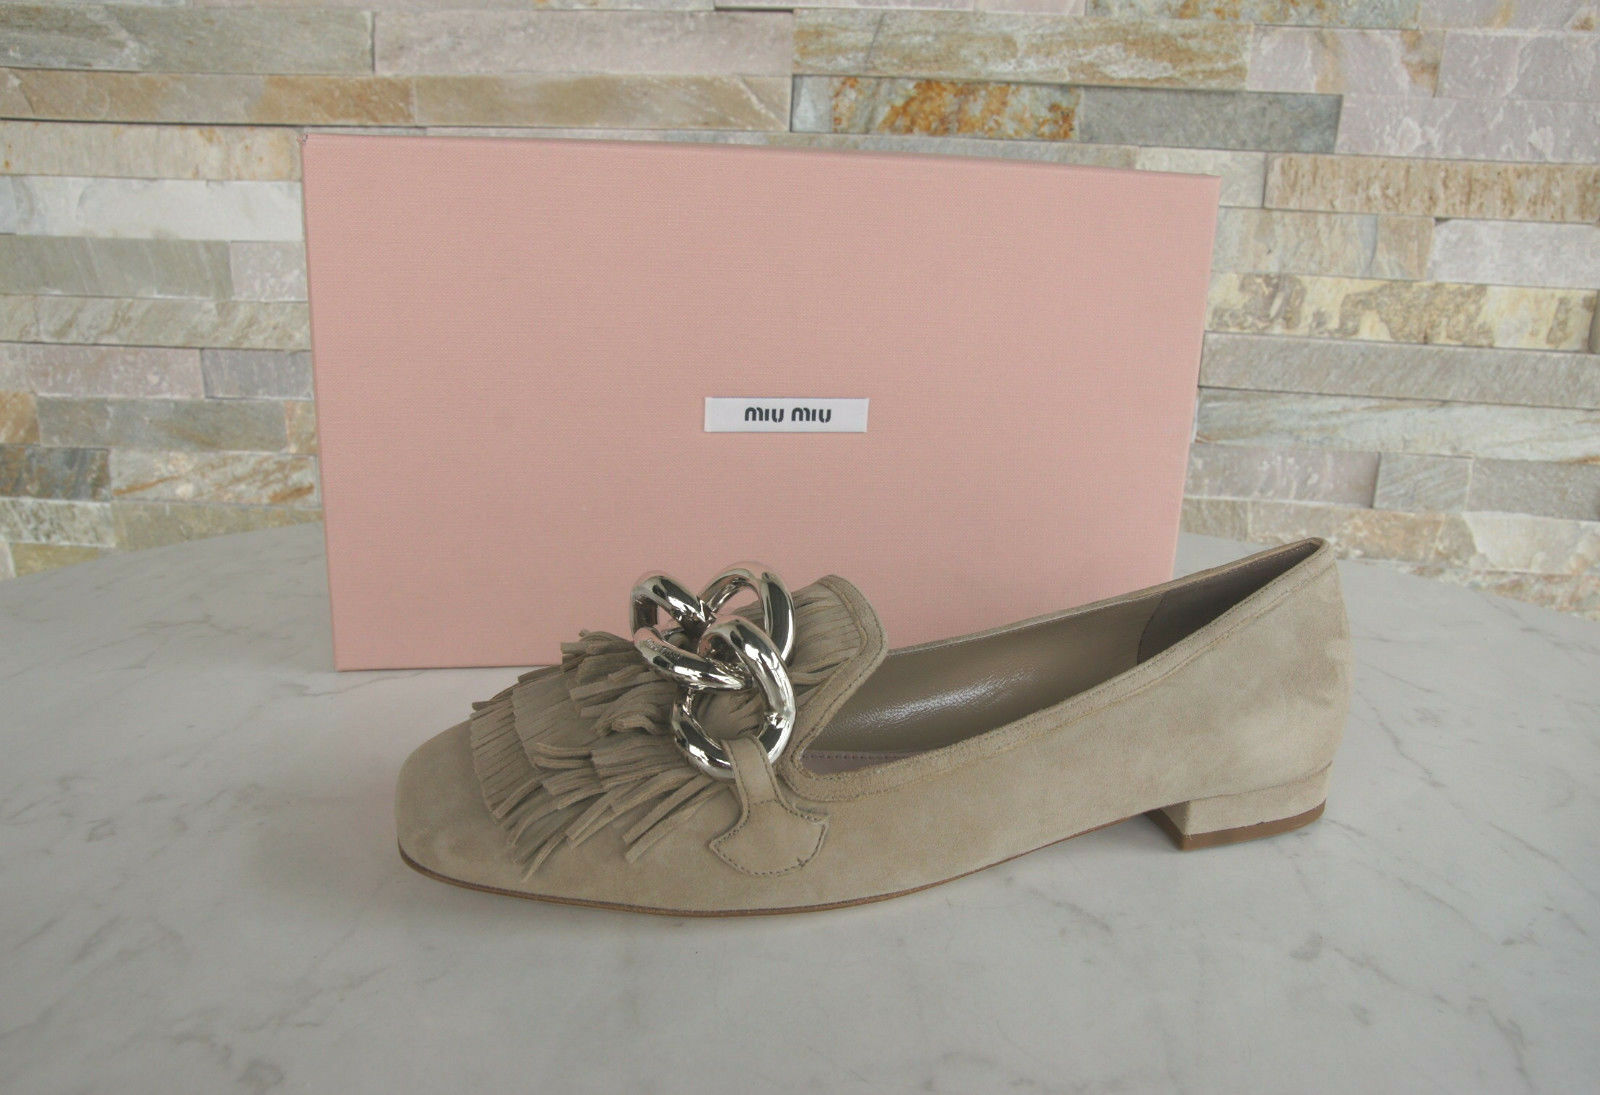 Miu Miu Size 36,5 Low shoes Pumps shoes 5S940A Fringes Beige Formerly New